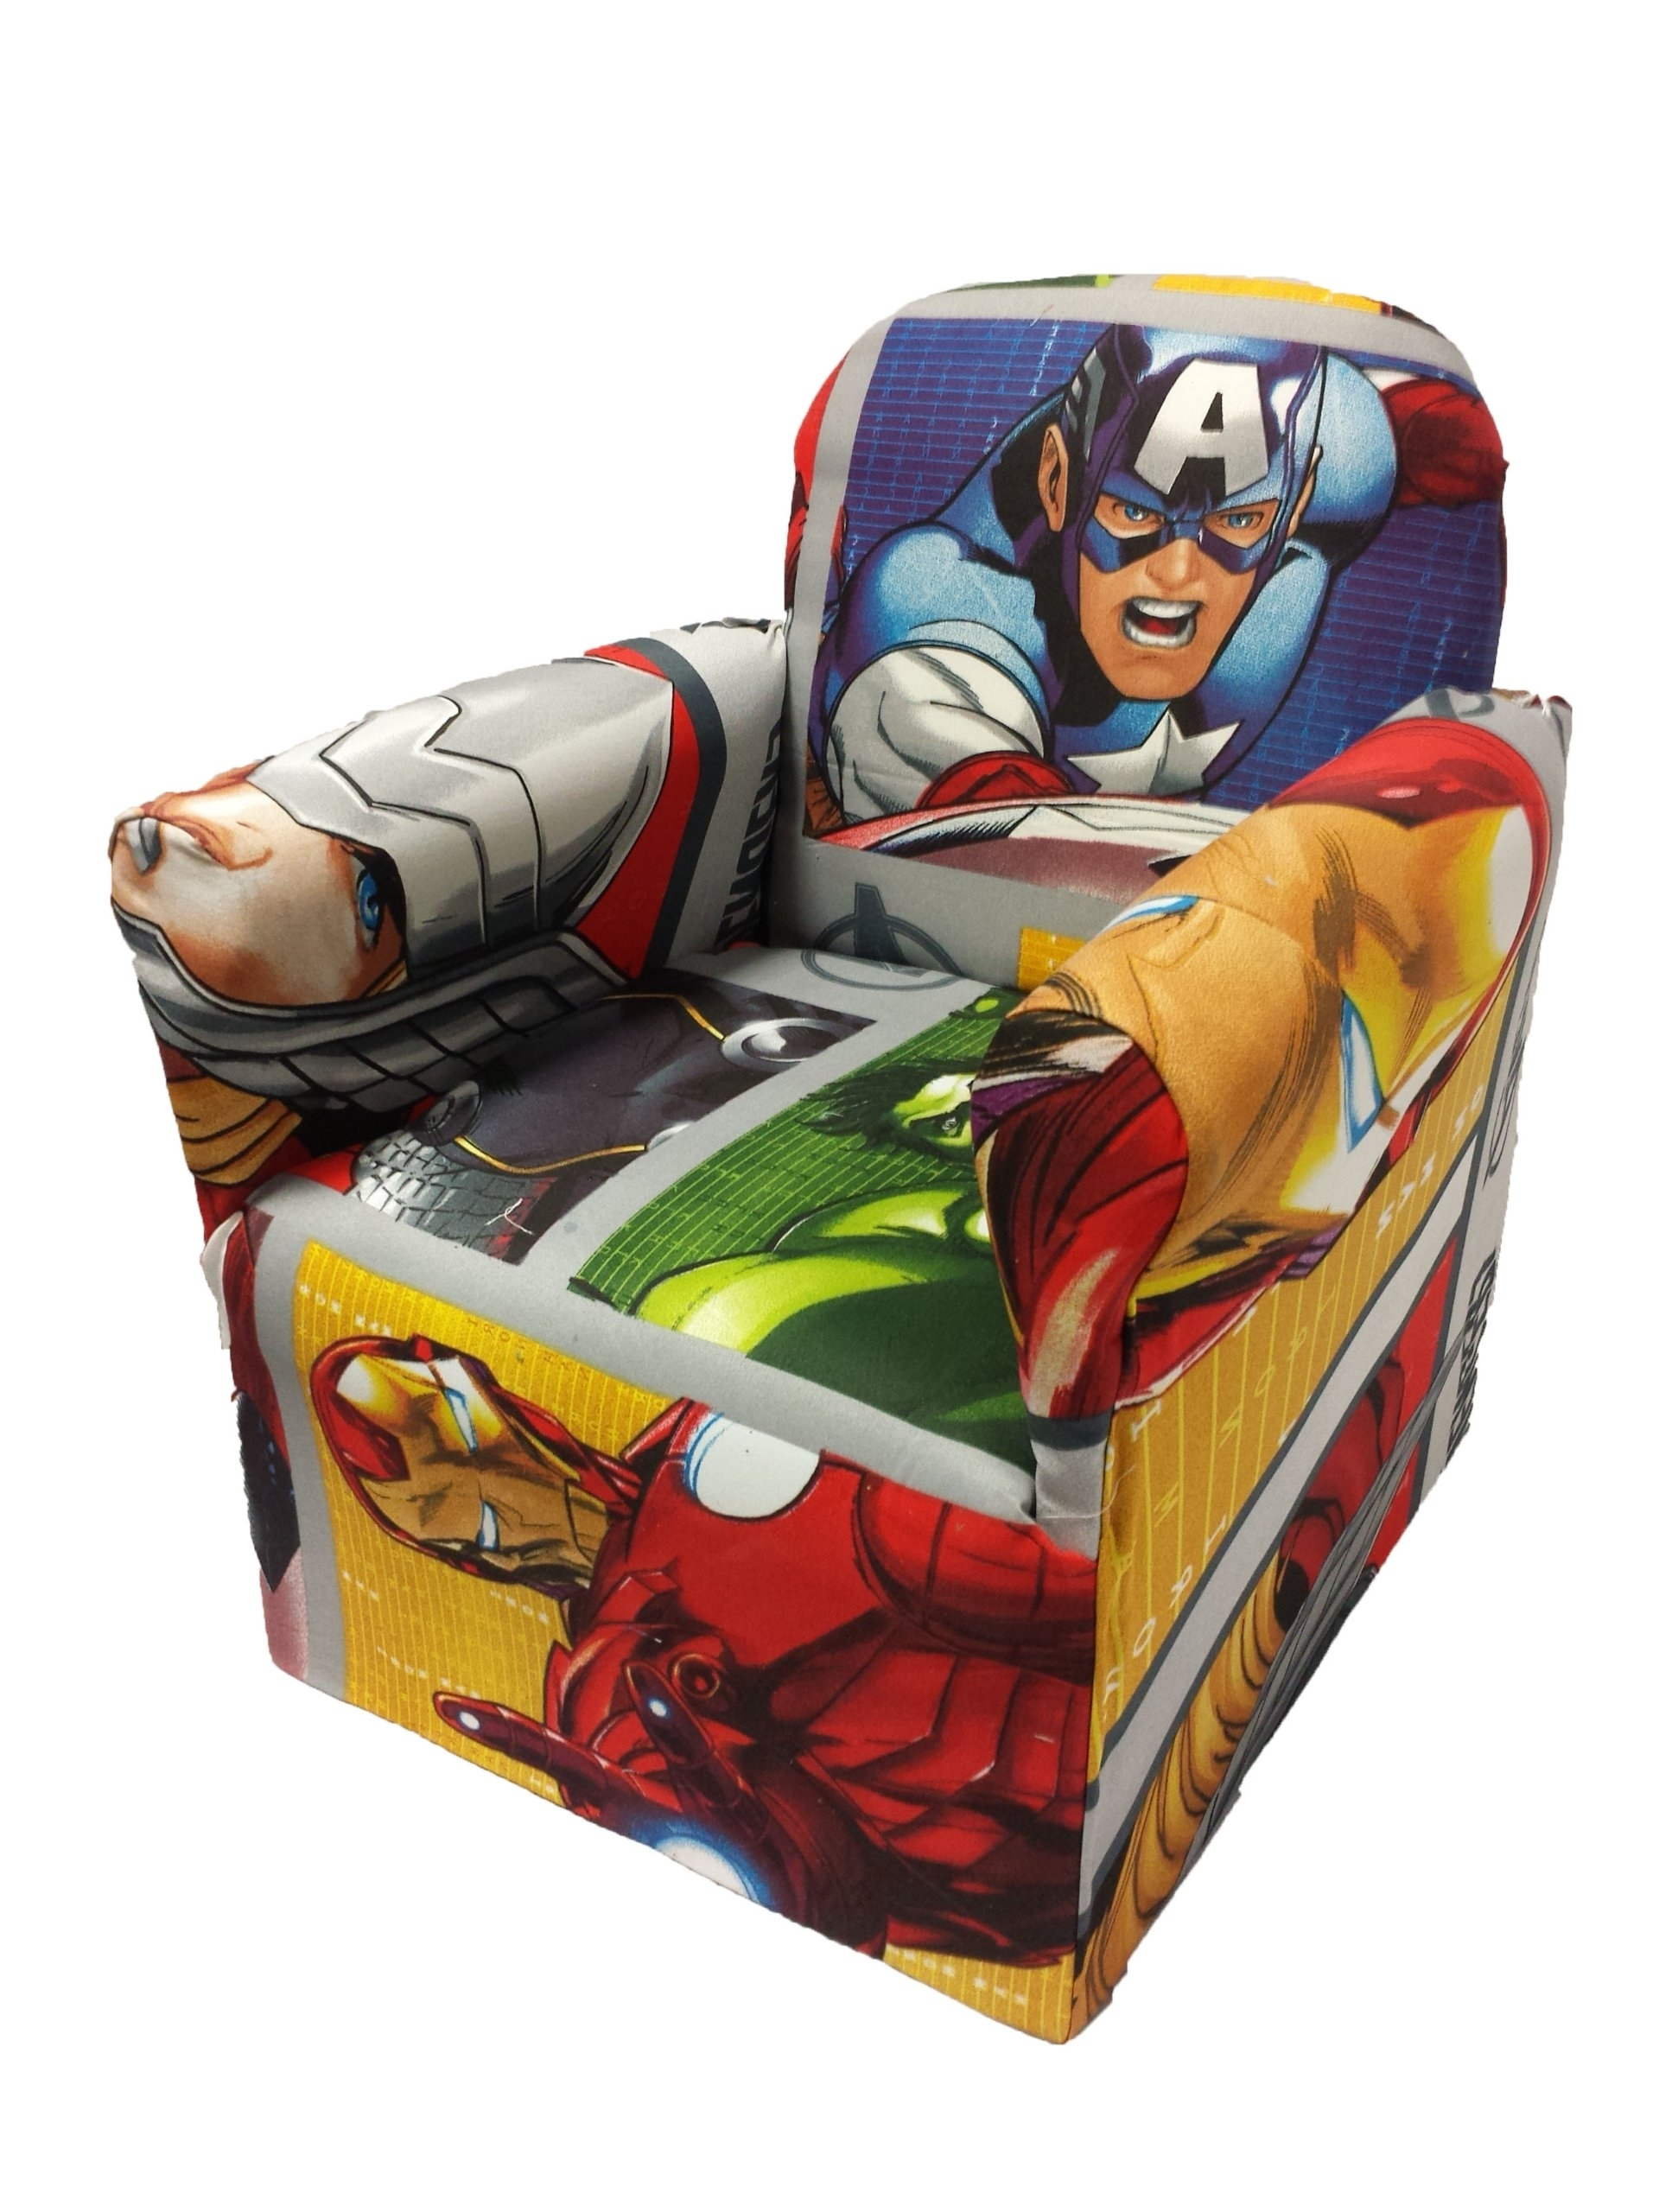 Preferred Childrens Disney Tv Characters Chair Sofa Kids Seats (Marvel Throughout Disney Sofa Chairs (View 10 of 20)